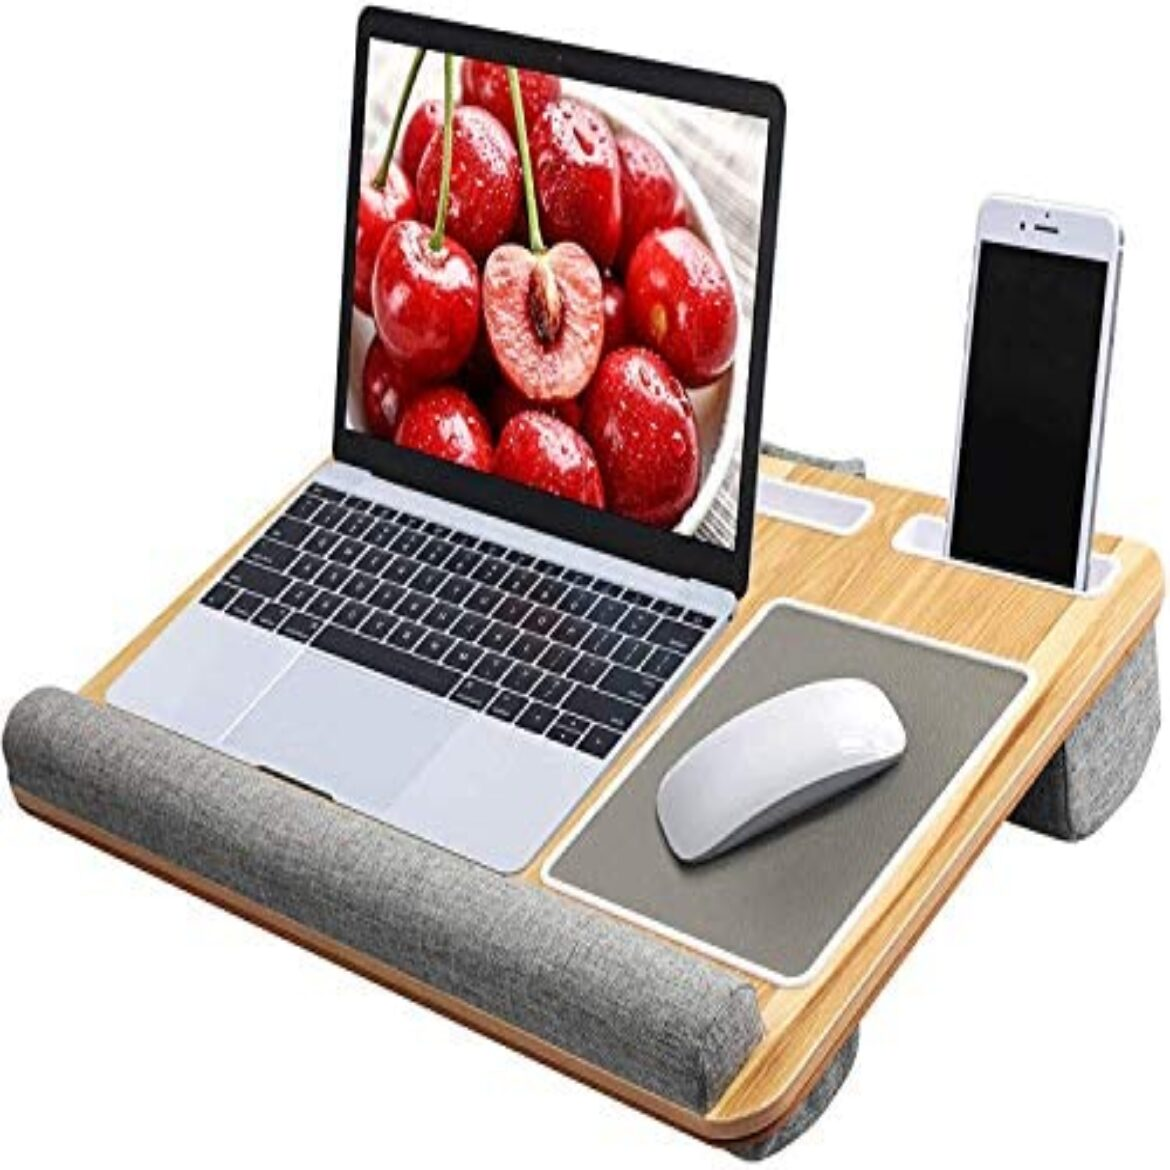 HUANUO Notebook computer Tray with Cushion, In-constructed Mouse Pad & Wrist Pad for Notebook up to 17″ with Tablet, Pen & Phone Holder